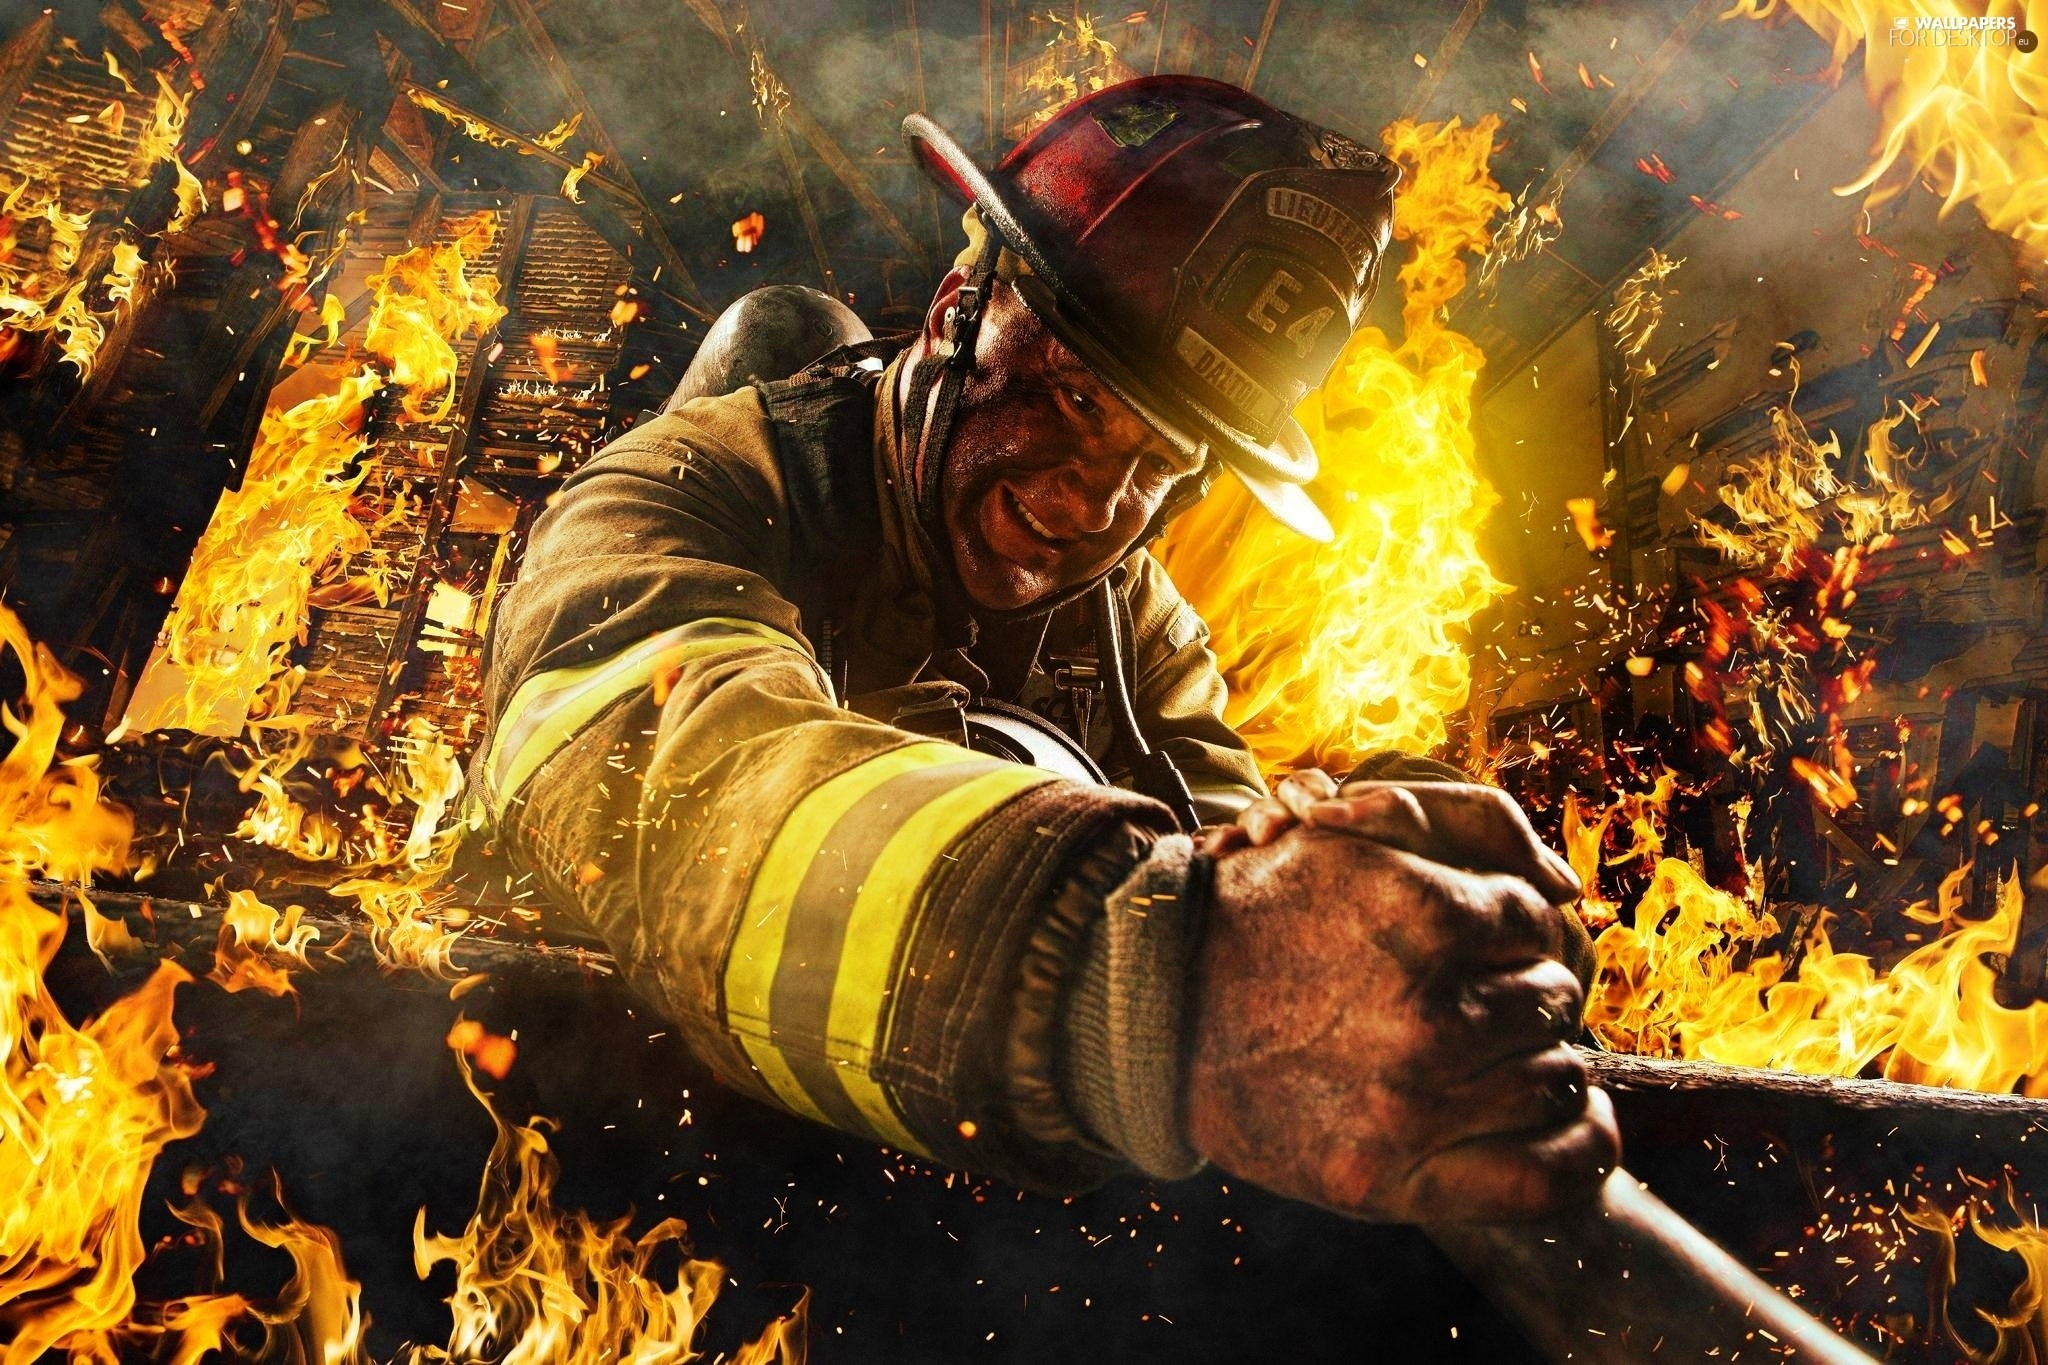 Filename: Beautiful-Fireman-Wallpaper.jpg